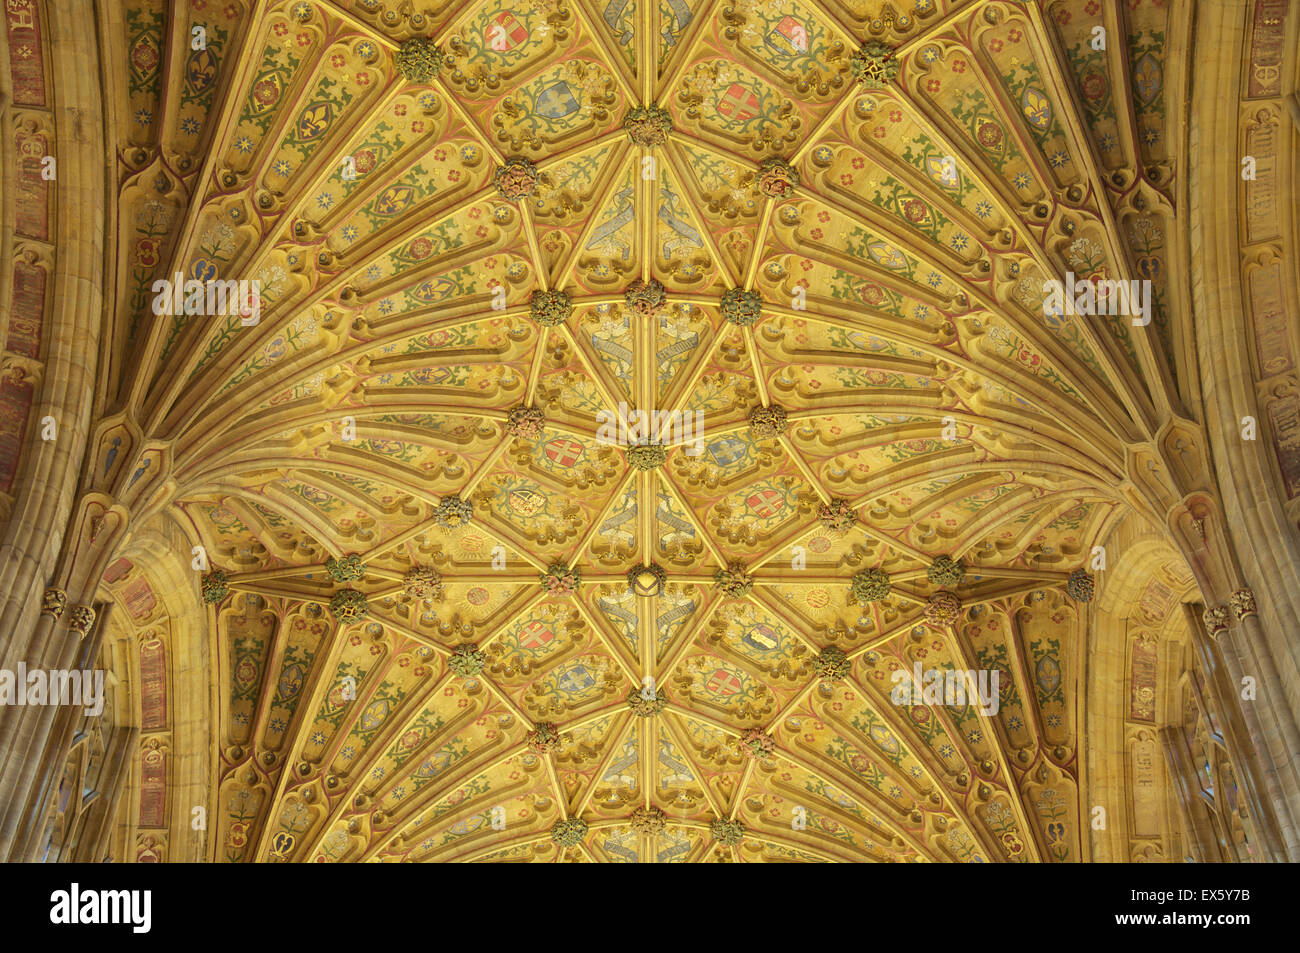 The ornately decorated Gothic fan vaulted ceiling of Sherborne Abbey with its colourful designs and symbols. Dorset, - Stock Image